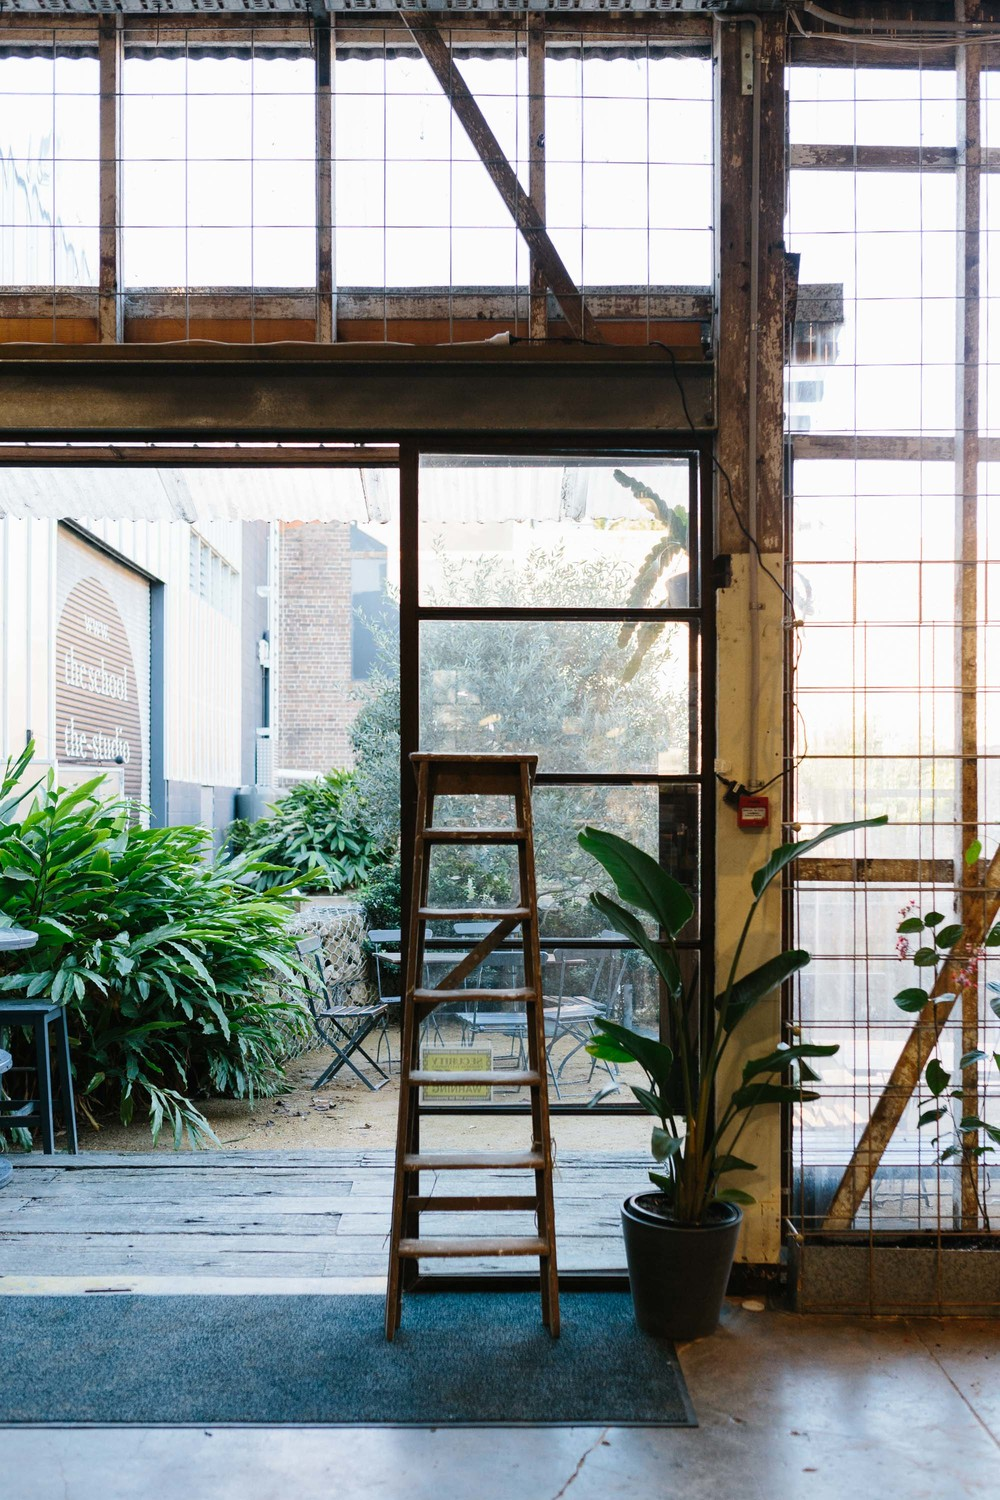 Marnie Hawson, Melbourne lifestyle photographer for The Downtime Agenda and Sasha Titchkosky from Koskela